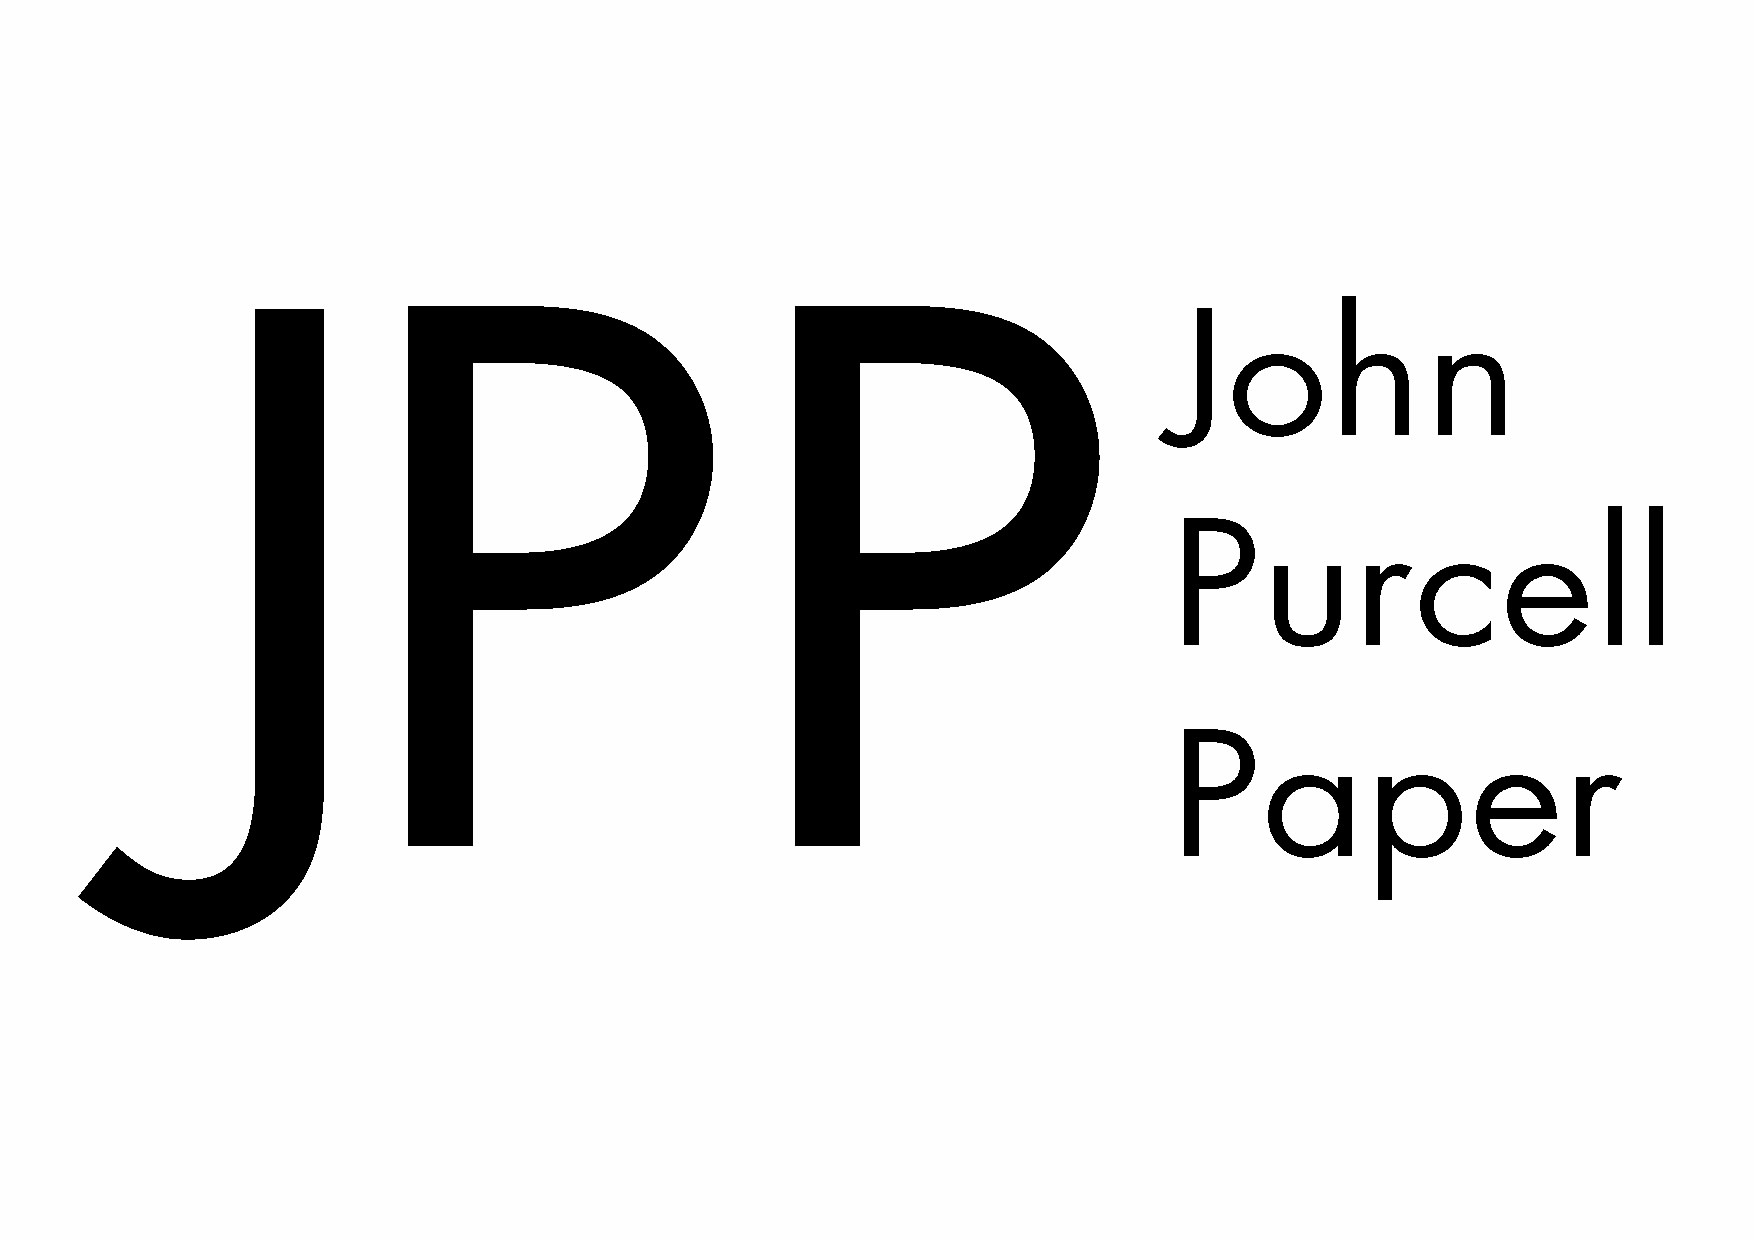 John Purcell Paper Prize, £150 worth of paper